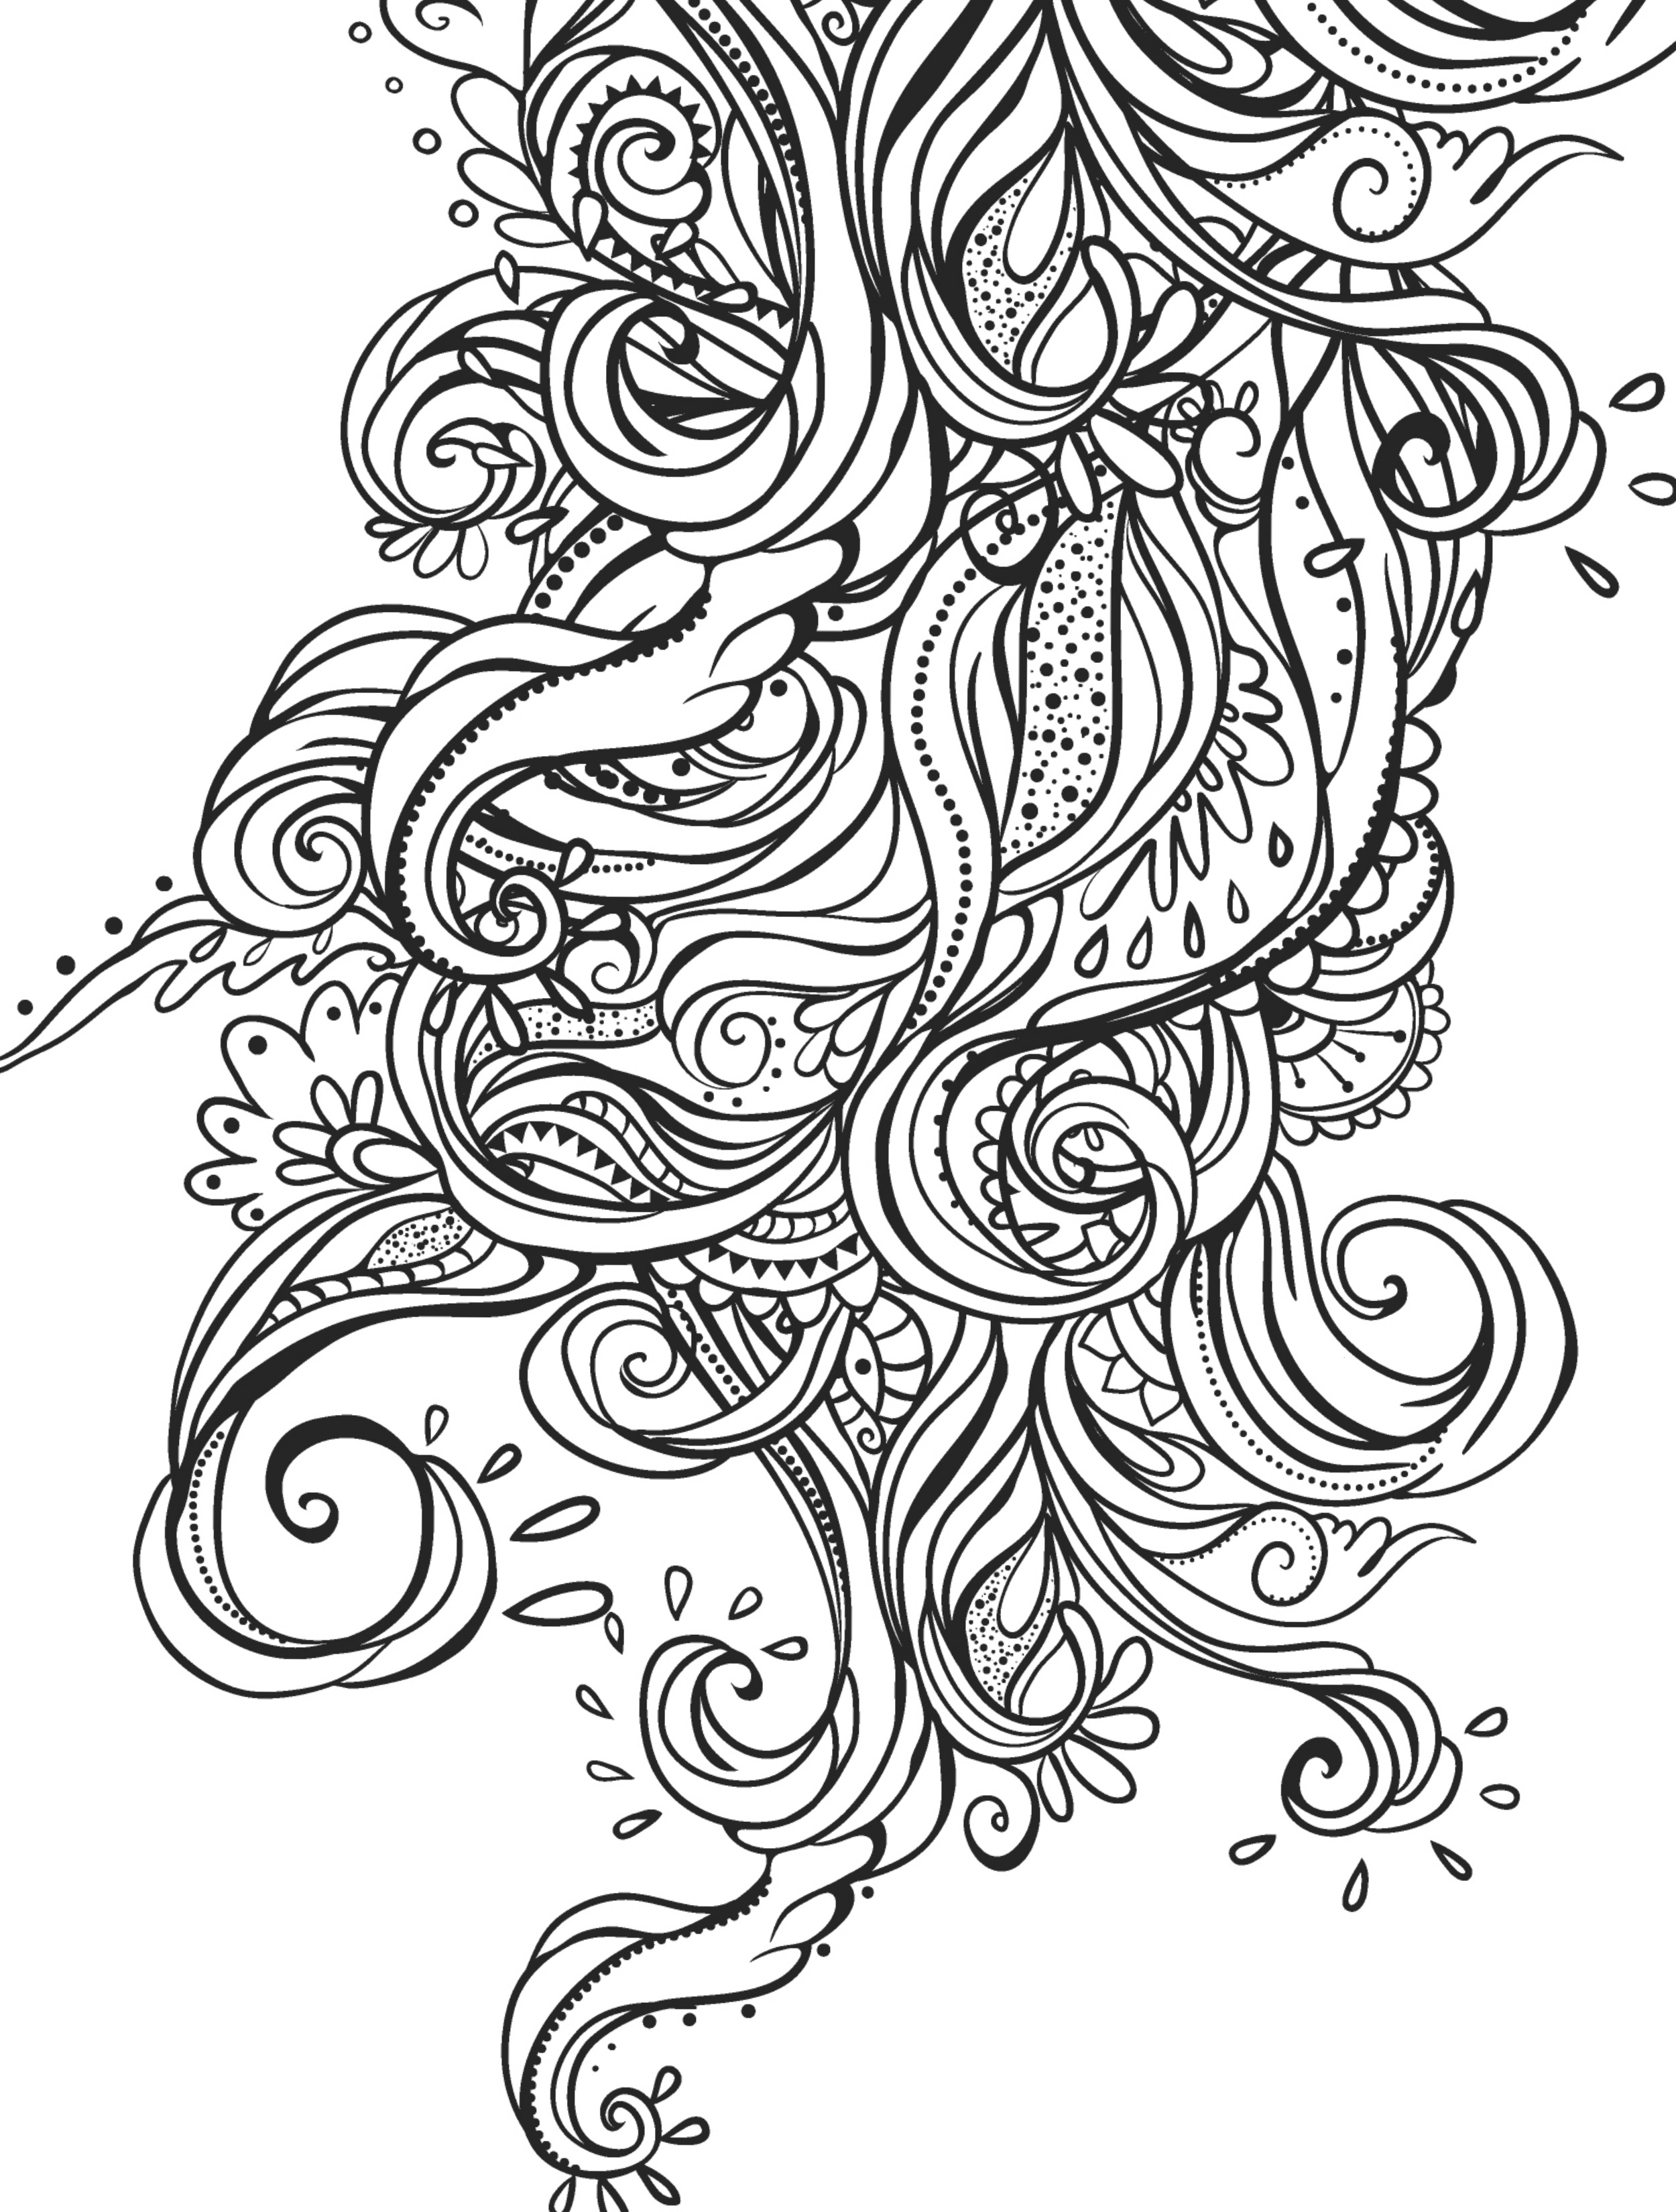 736x951 Paisley Designs Coloring Book Printable Pages Just Me 2500x3300 Pictures Beautiful To Color